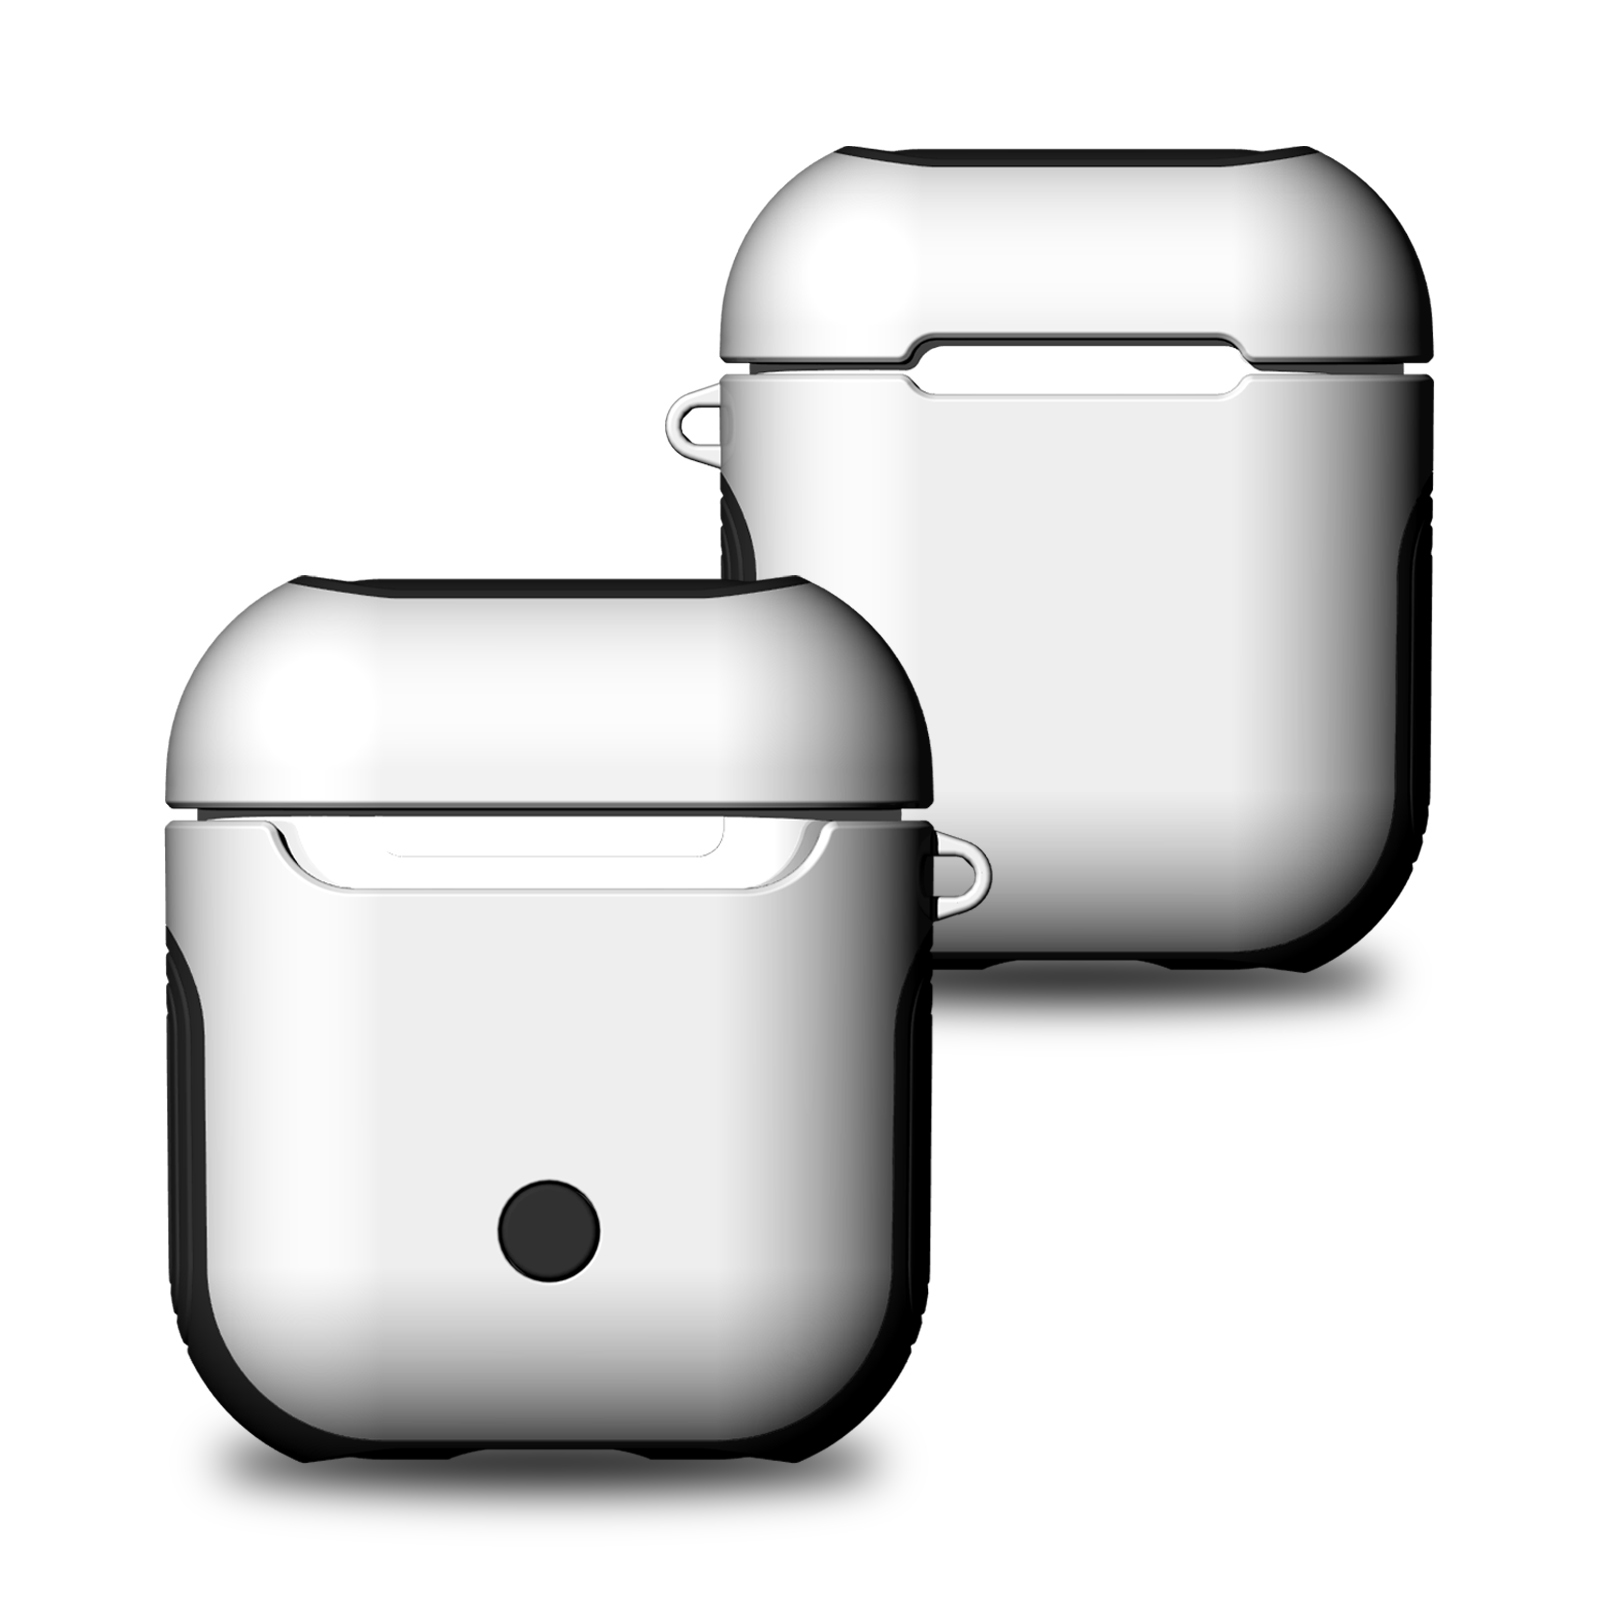 Goodest AirPods Case Protective Silicone Cover and Skin for Apple Airpods Charging Case ( 1 Pack), Silver